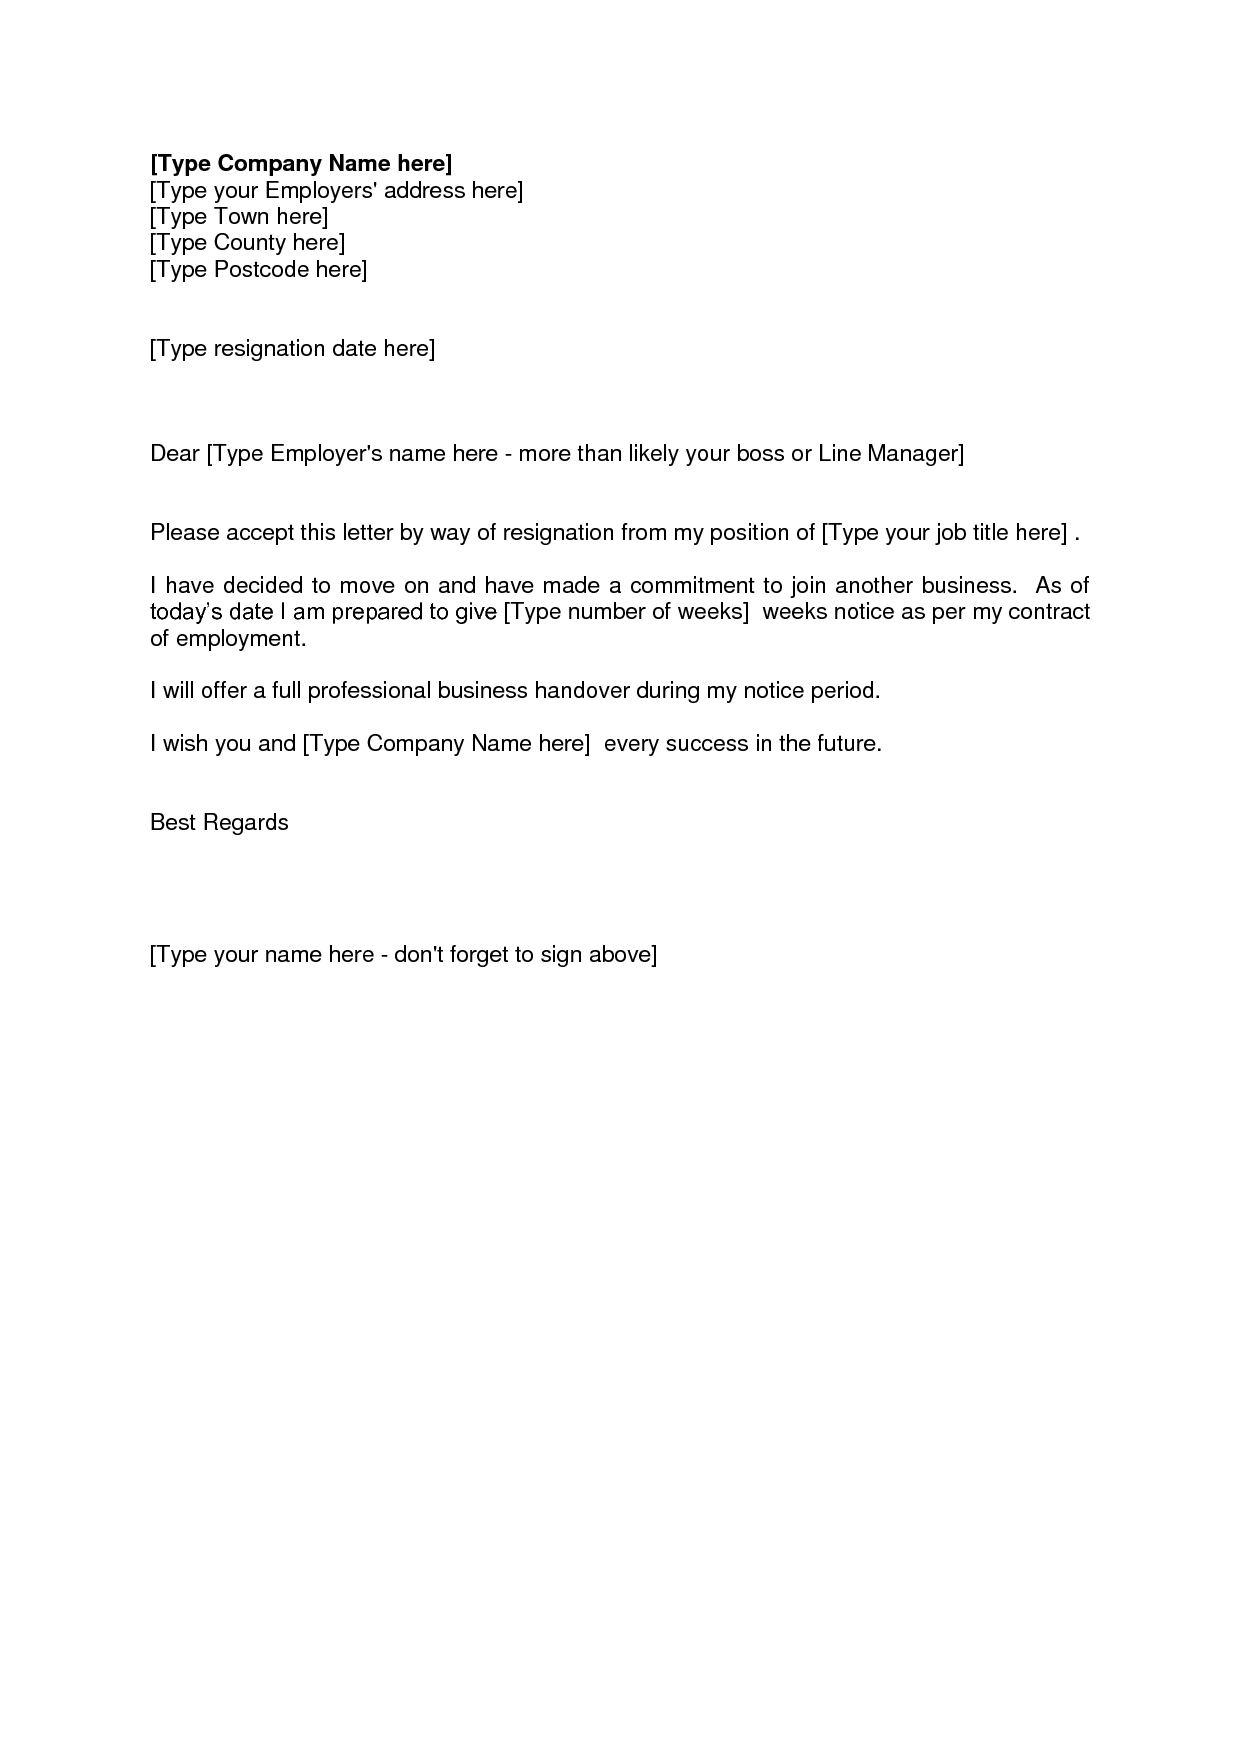 Resignation Letter With 2 Weeks Notice | Resume CV Cover Letter